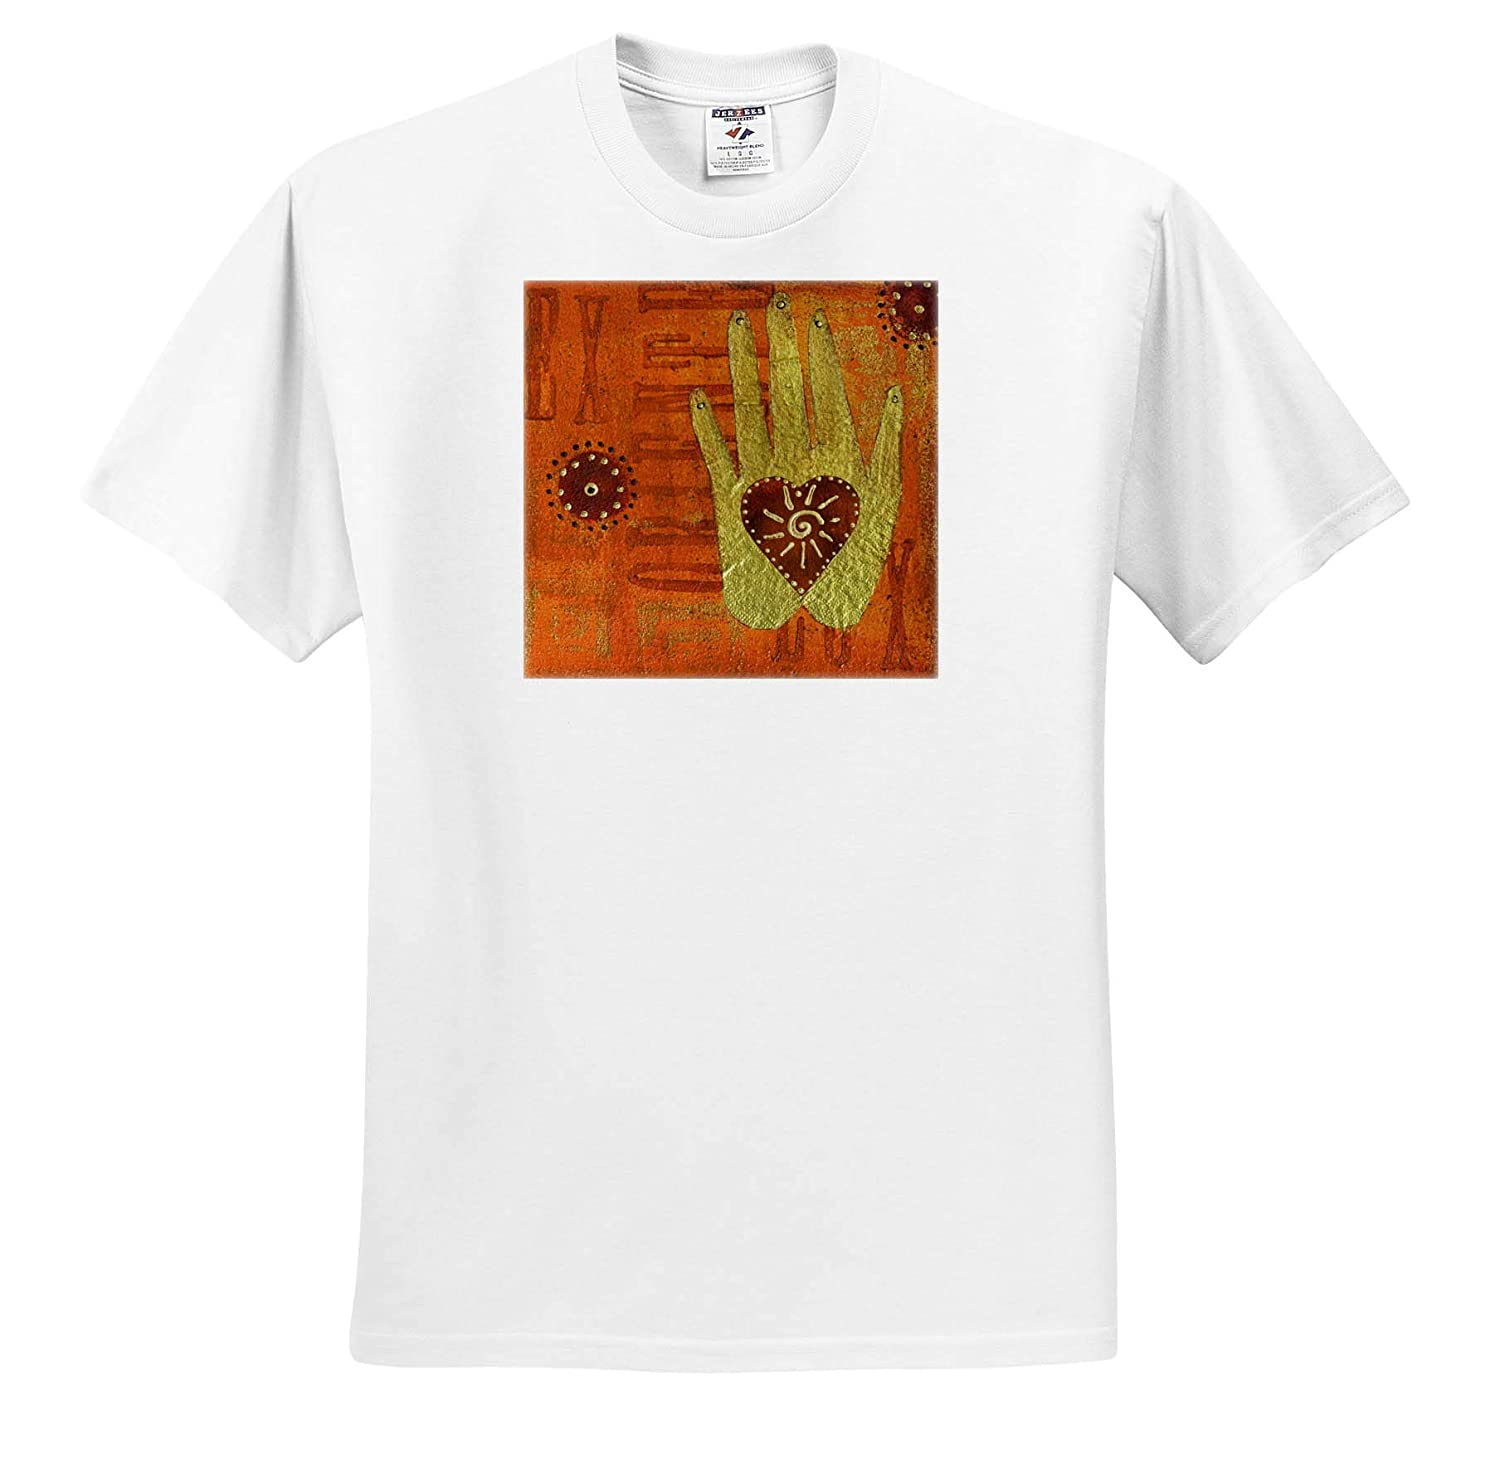 3dRose Andrea Haase Art Illustration Mixed Media Collage Art Painting with Sun and Heart Symbol T-Shirts